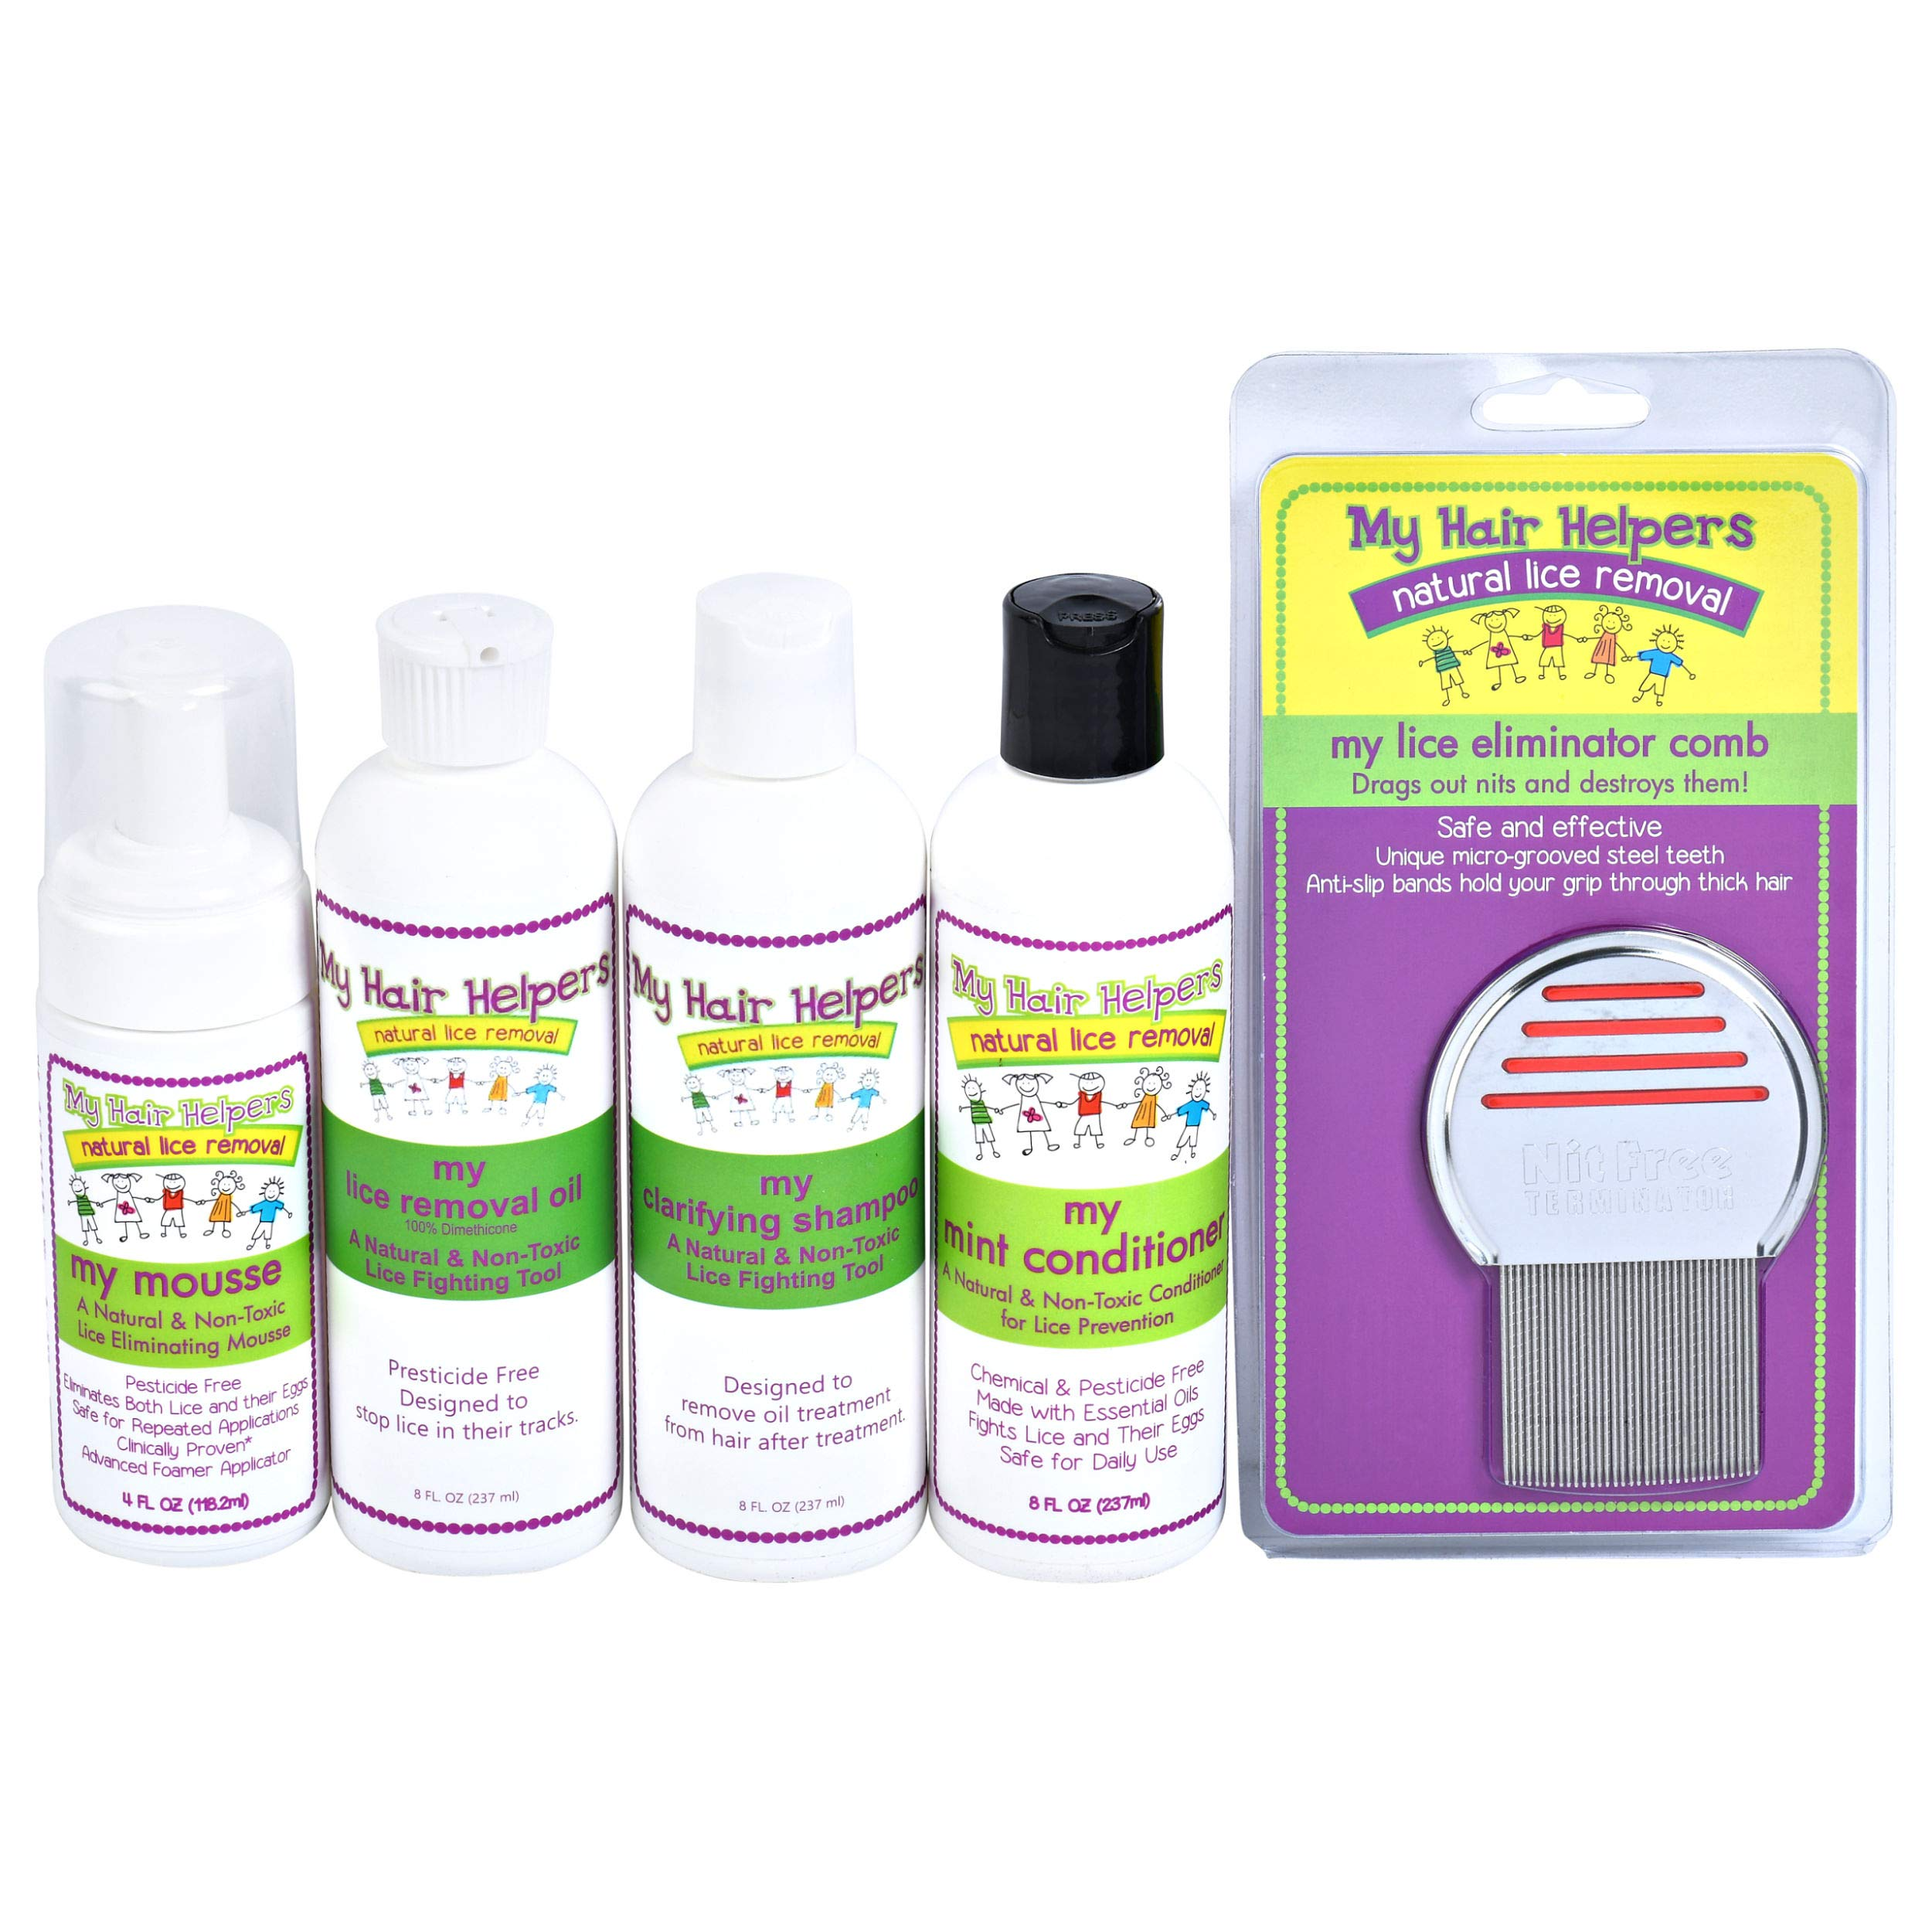 Complete Family Lice Treatment Kit - Nit Removal Comb, Foam Mousse, Dimethicone Oil, Shampoo & Essential Oil Conditioner | Natural Pesticide-Free to Remove Eggs in Kids Hair Treats 2-3 Family Members by MY HAIR HELPERS NATURAL LICE REMOVAL